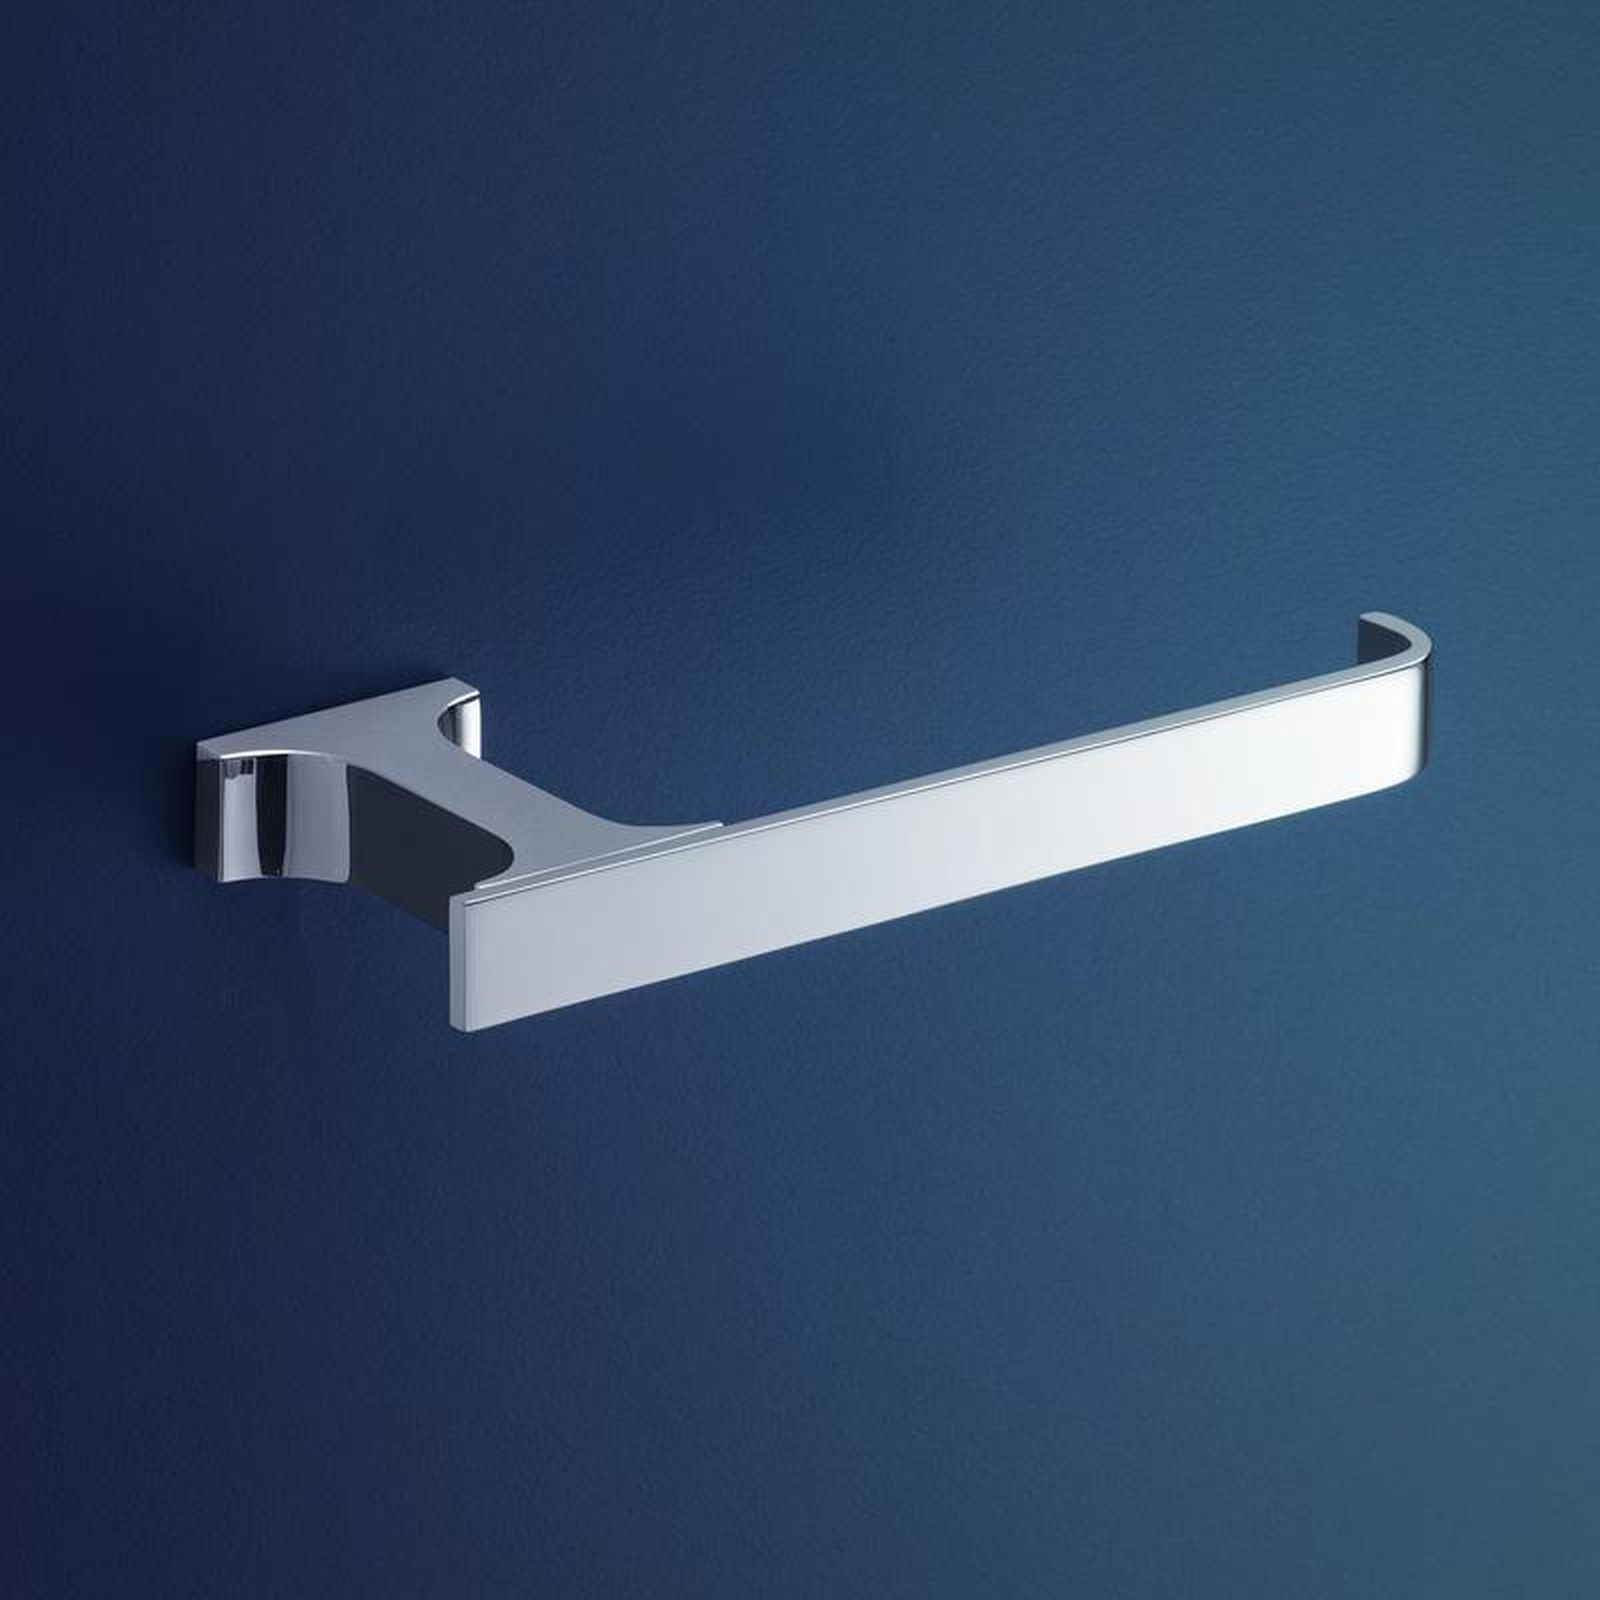 Dorf bathroom accessories - Download Cad Files For Dorf Jovian Toilet Roll Holder